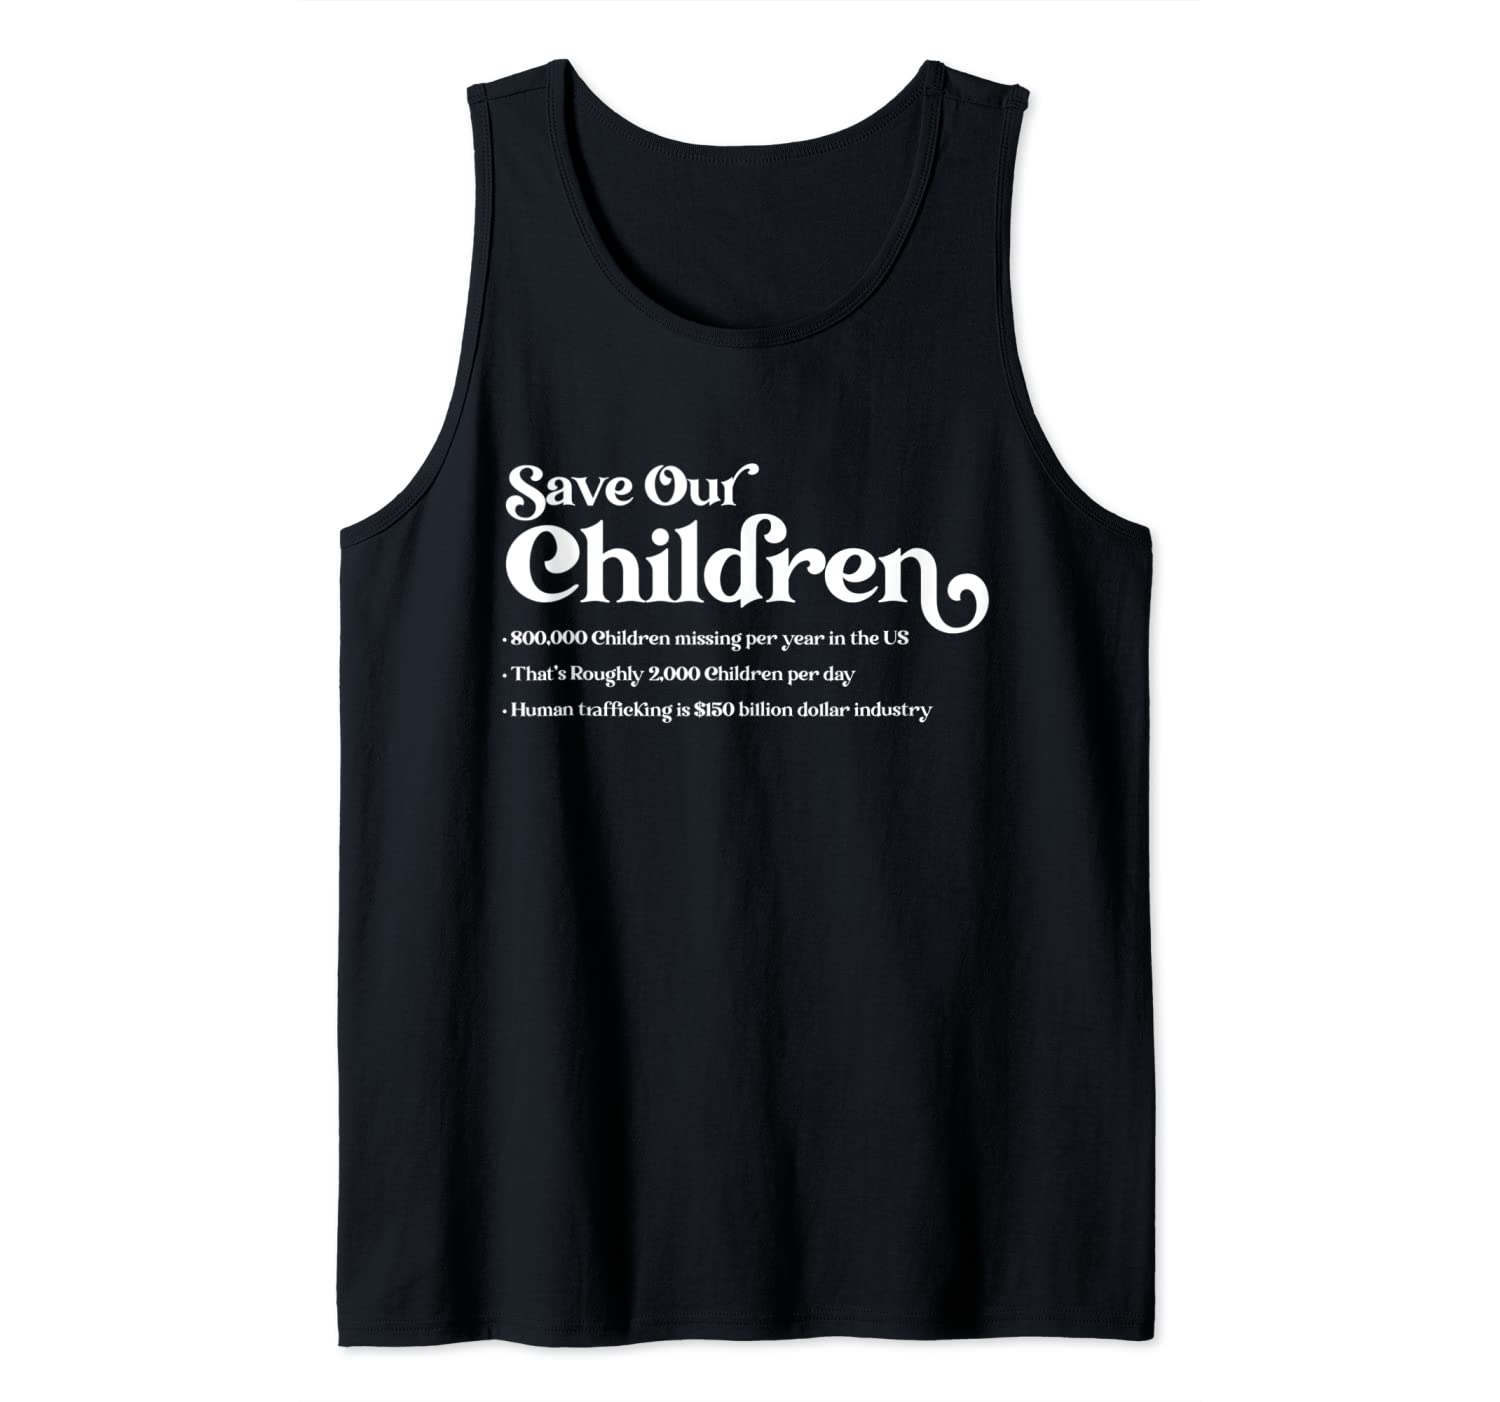 Save Our Children Stats End Child Trafficking Awareness Tank Top